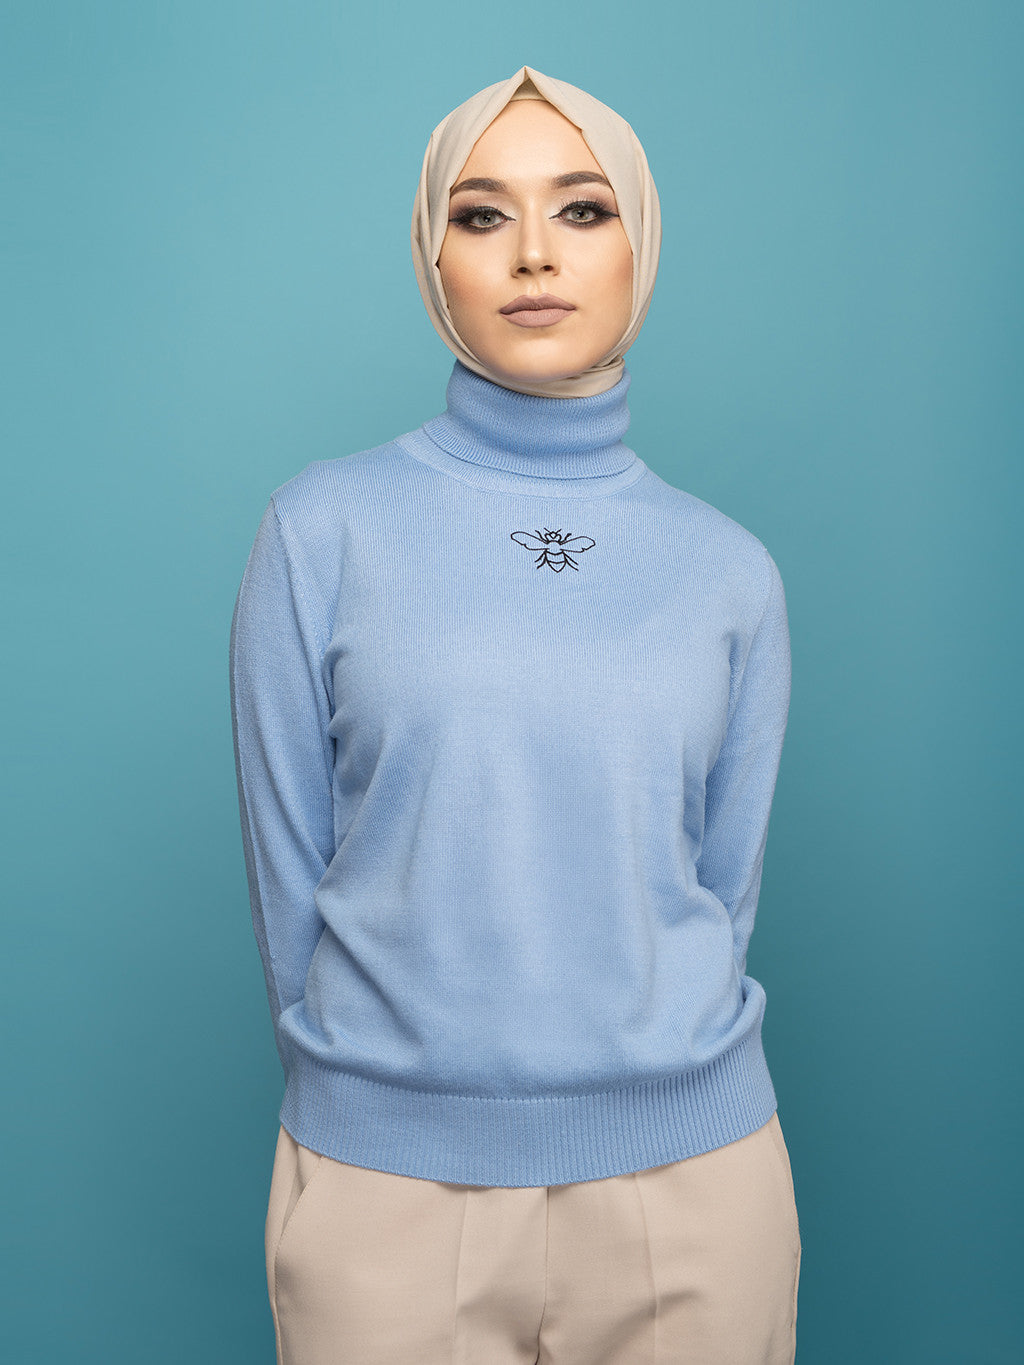 Sold Out - Blue Turtleneck Sweater